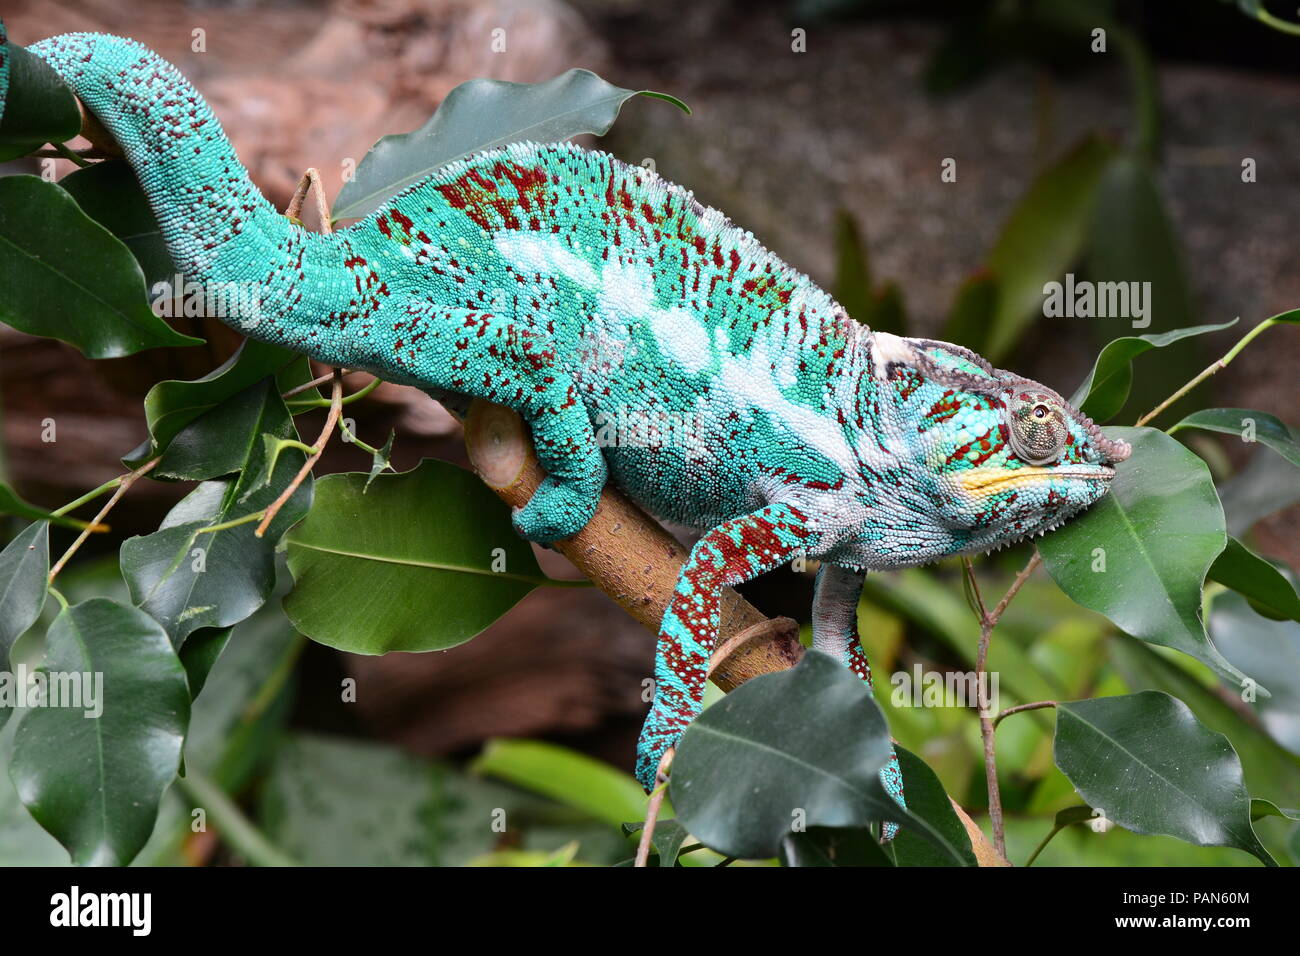 A colorful chameleon walks around its environment showing off its beauty. - Stock Image